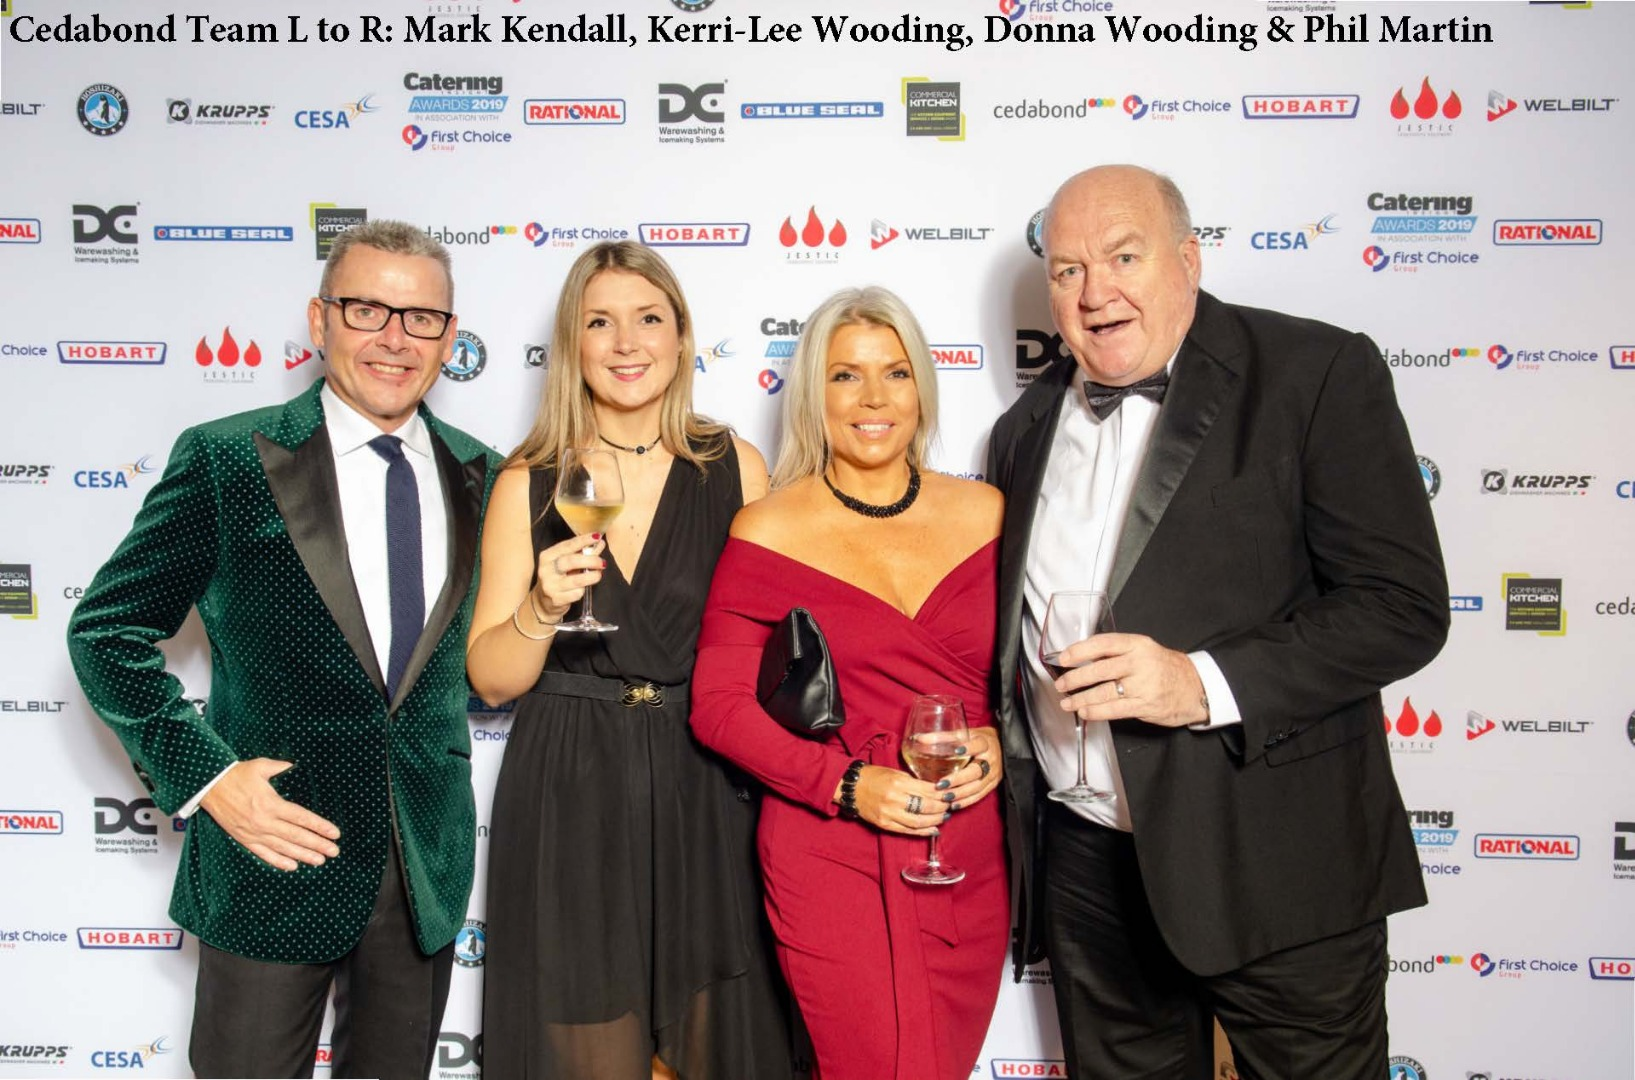 Cedabond Family win big at the Catering Insight Awards 2019